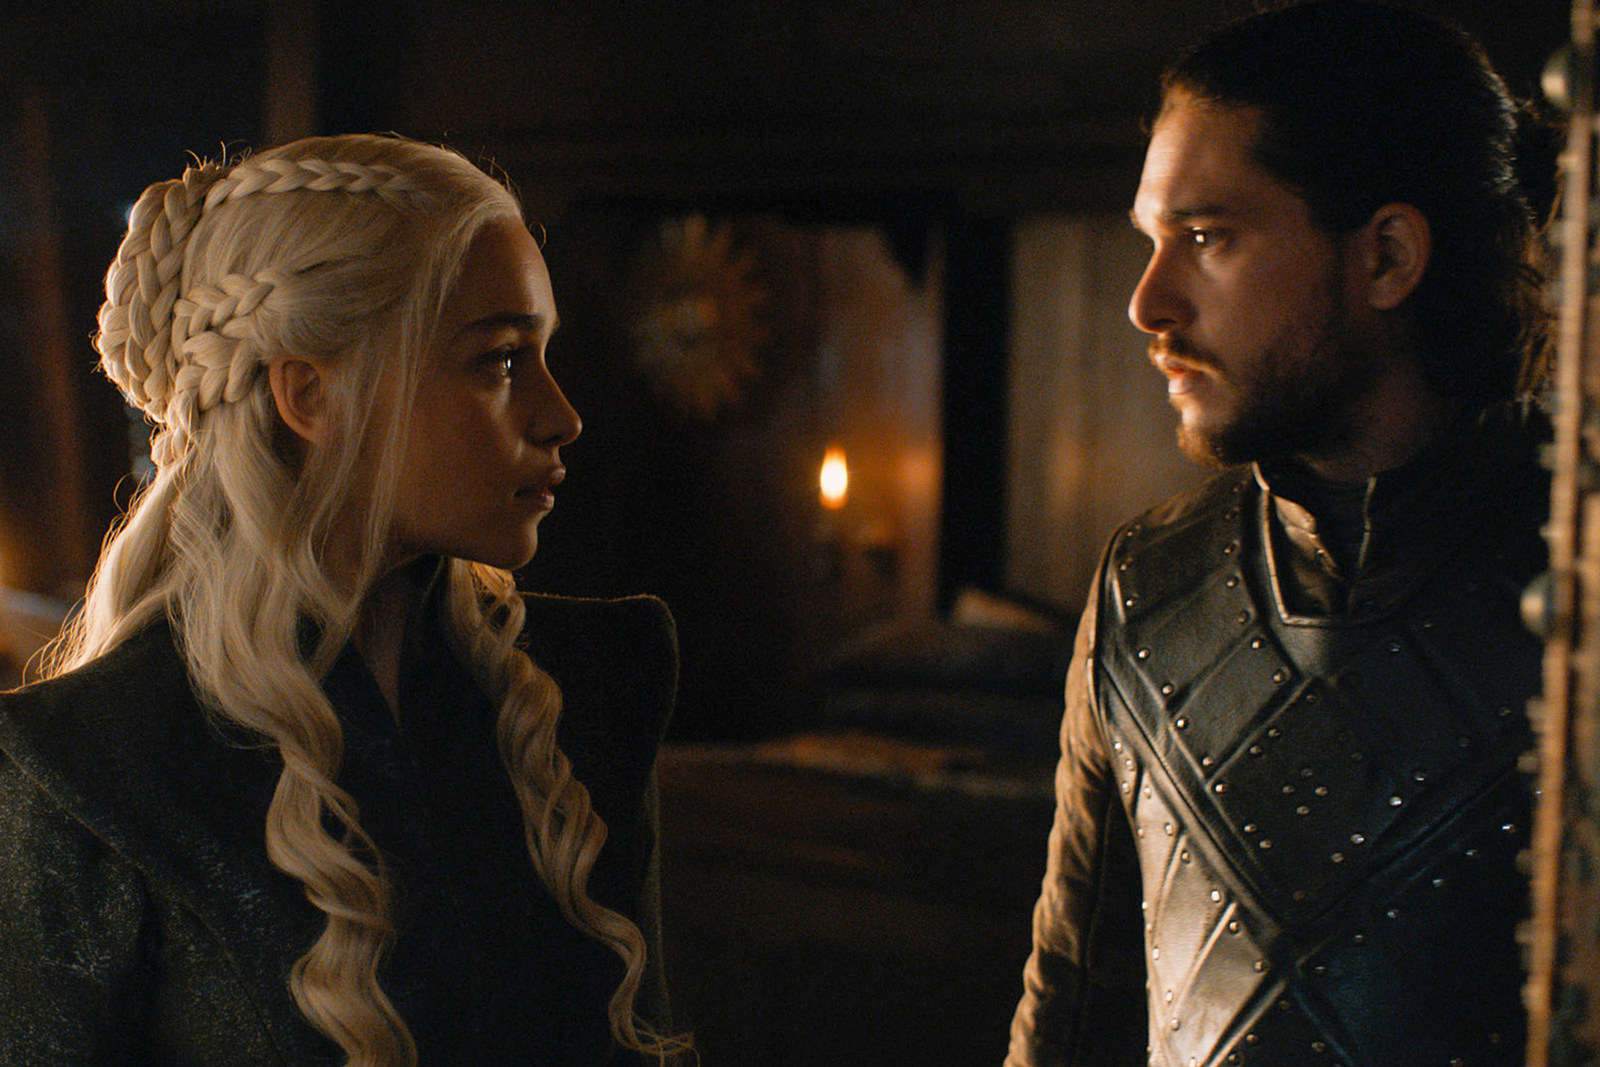 got-8-questions-jonerys-pic.jpg